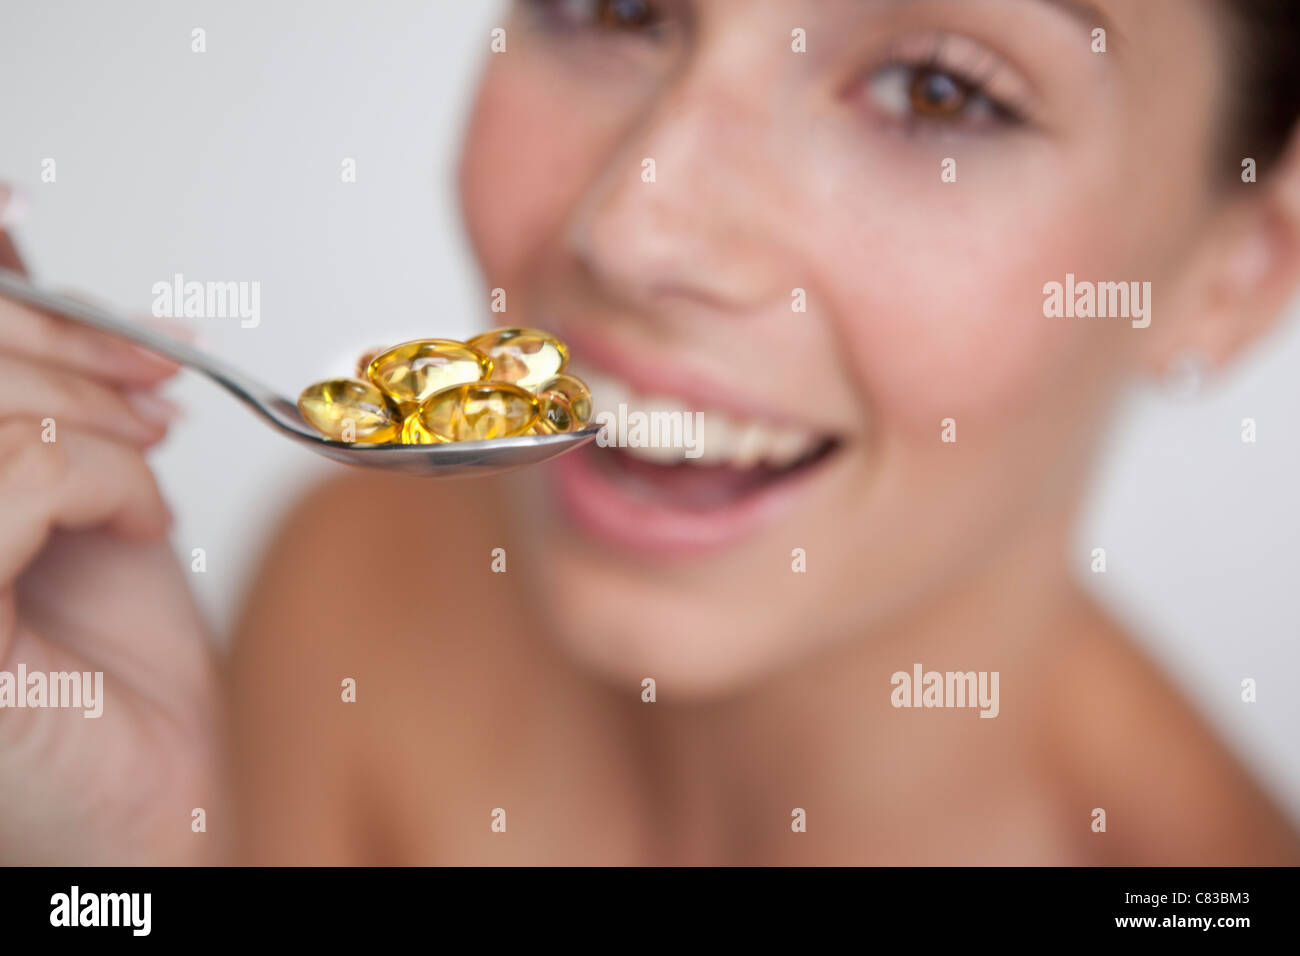 Woman eating spoonful of supplements - Stock Image